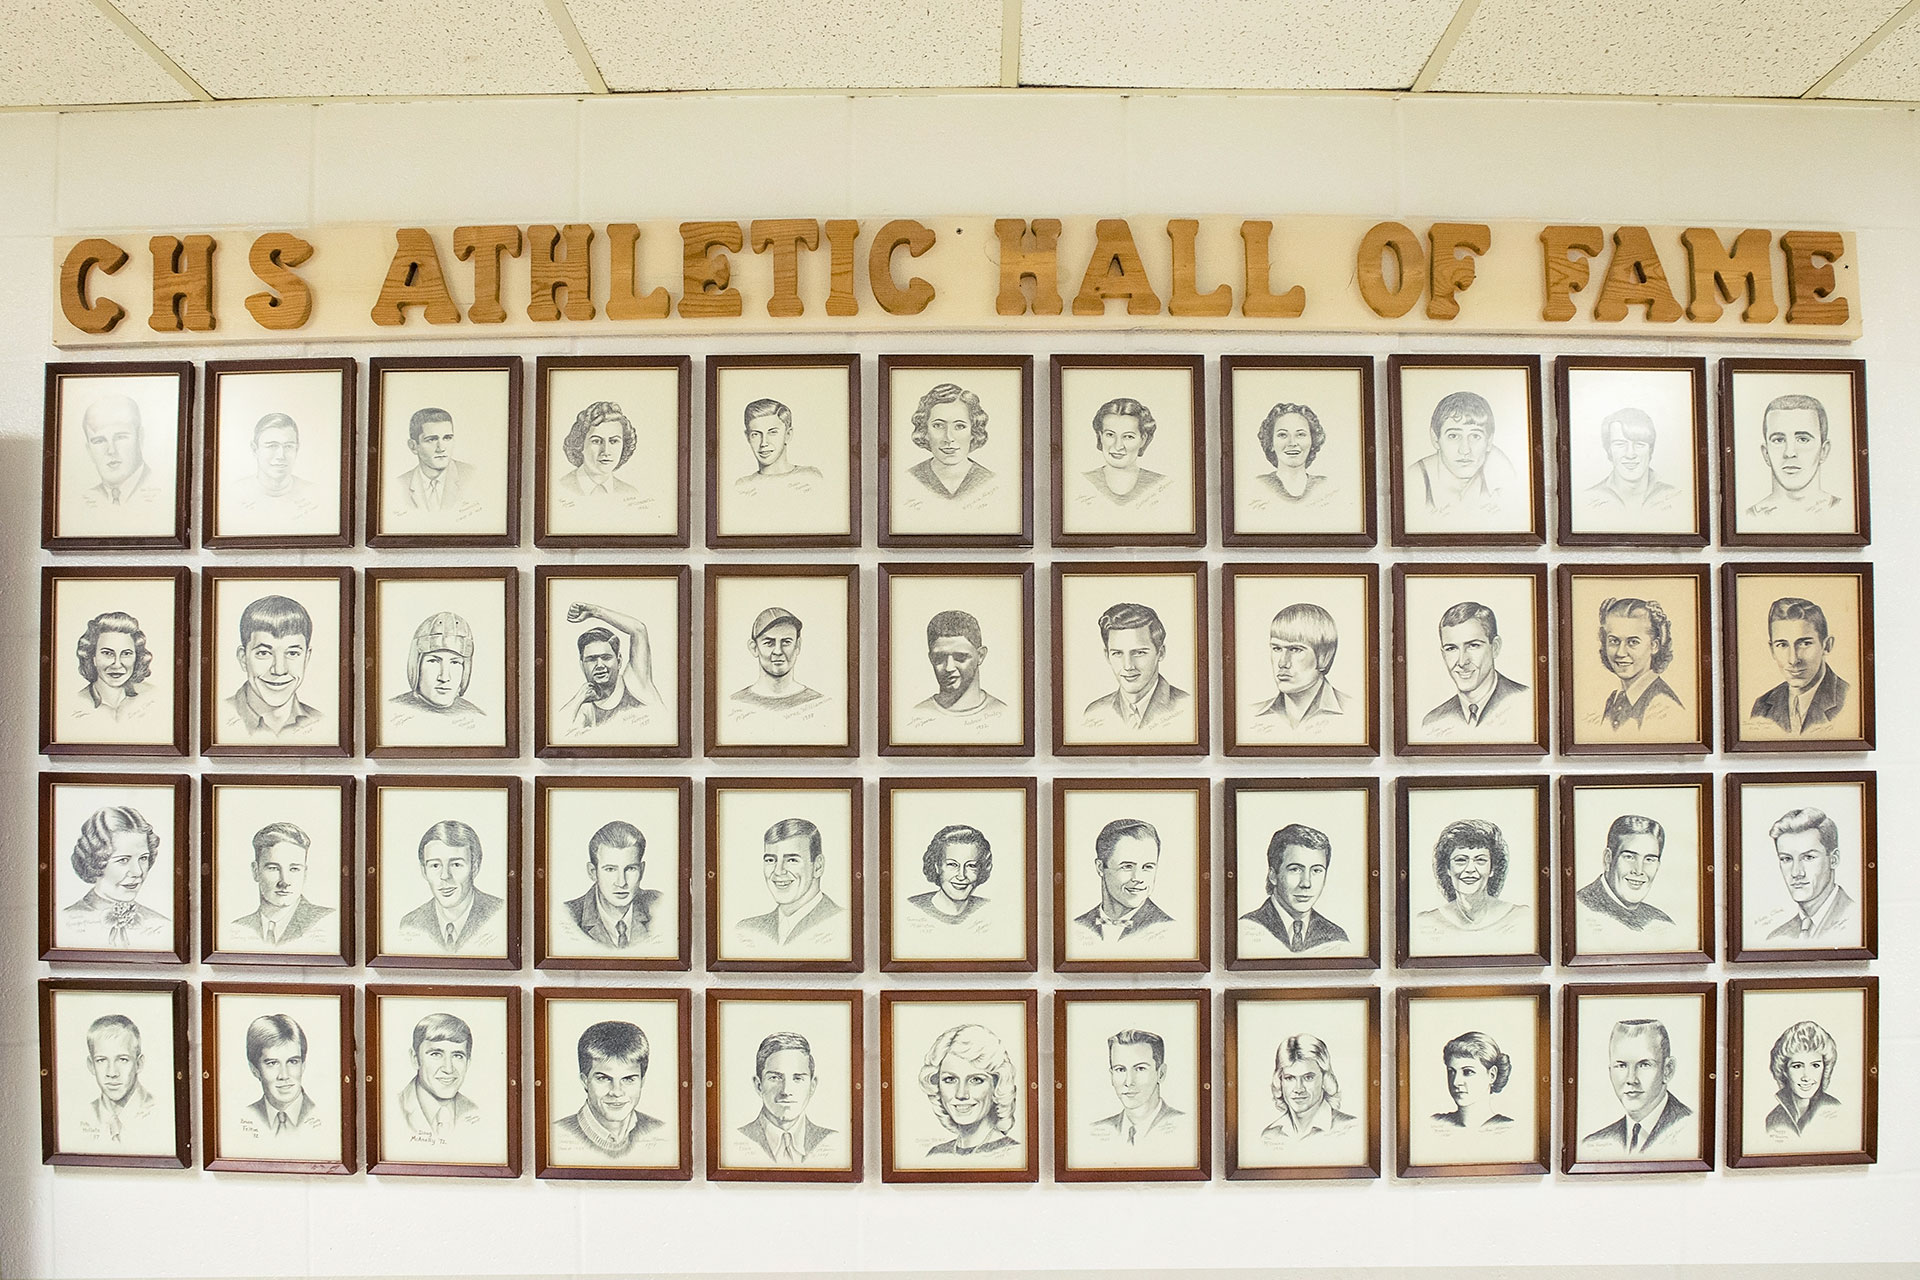 CHS Athletic Hall of Fame